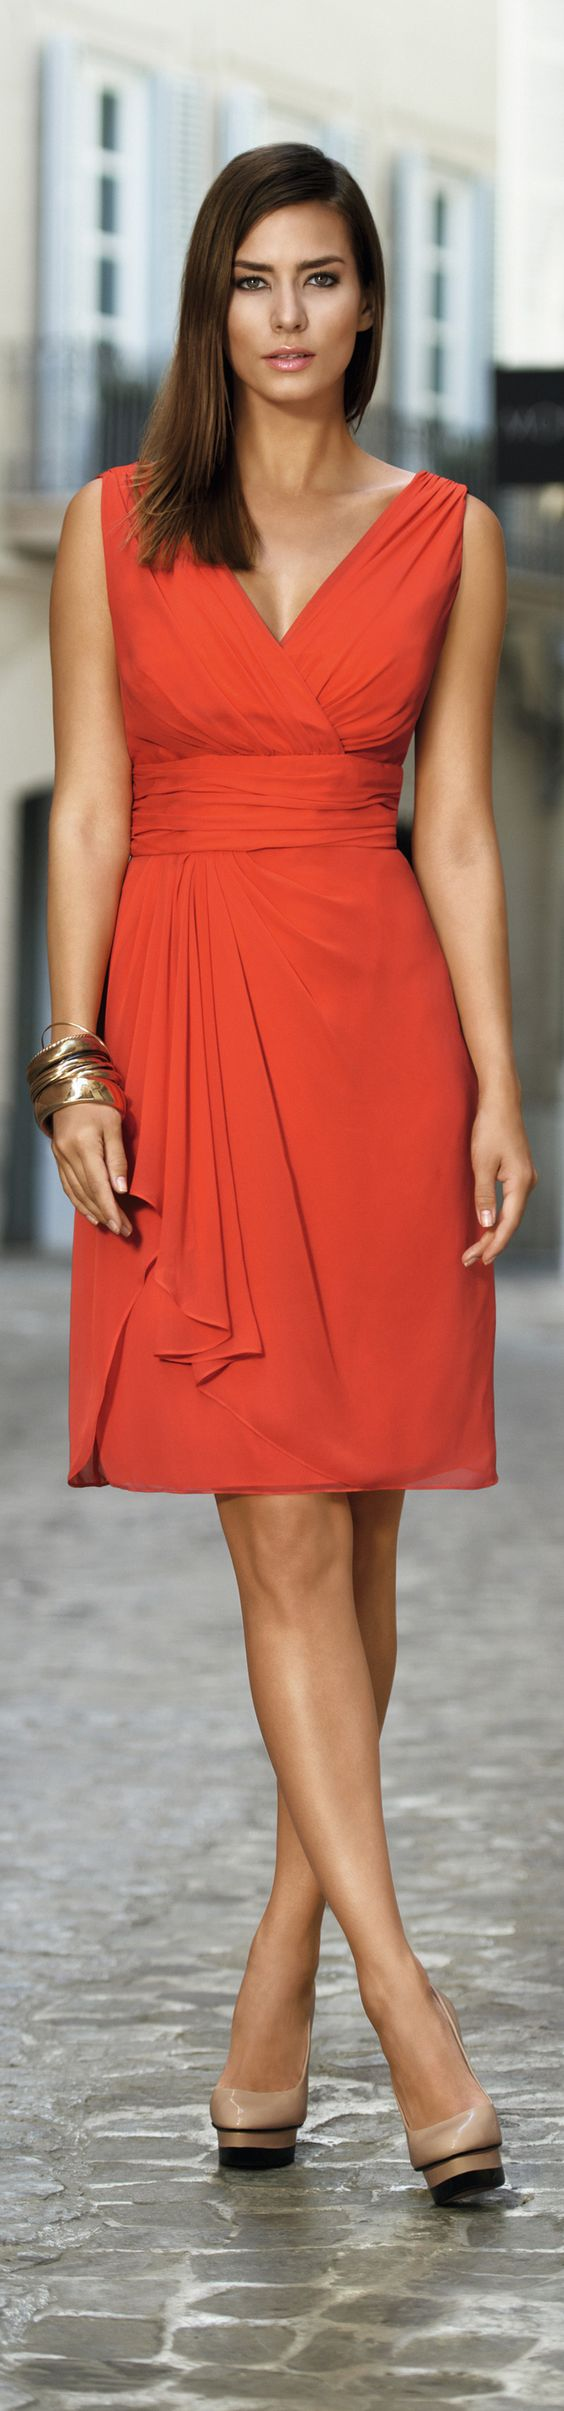 Sexy Cruise Wear - Find out what to buy for cruises at http://boomerinas.com/2011/12/sexy-plus-size-cruise-wear-cocktail-formal-dresses/